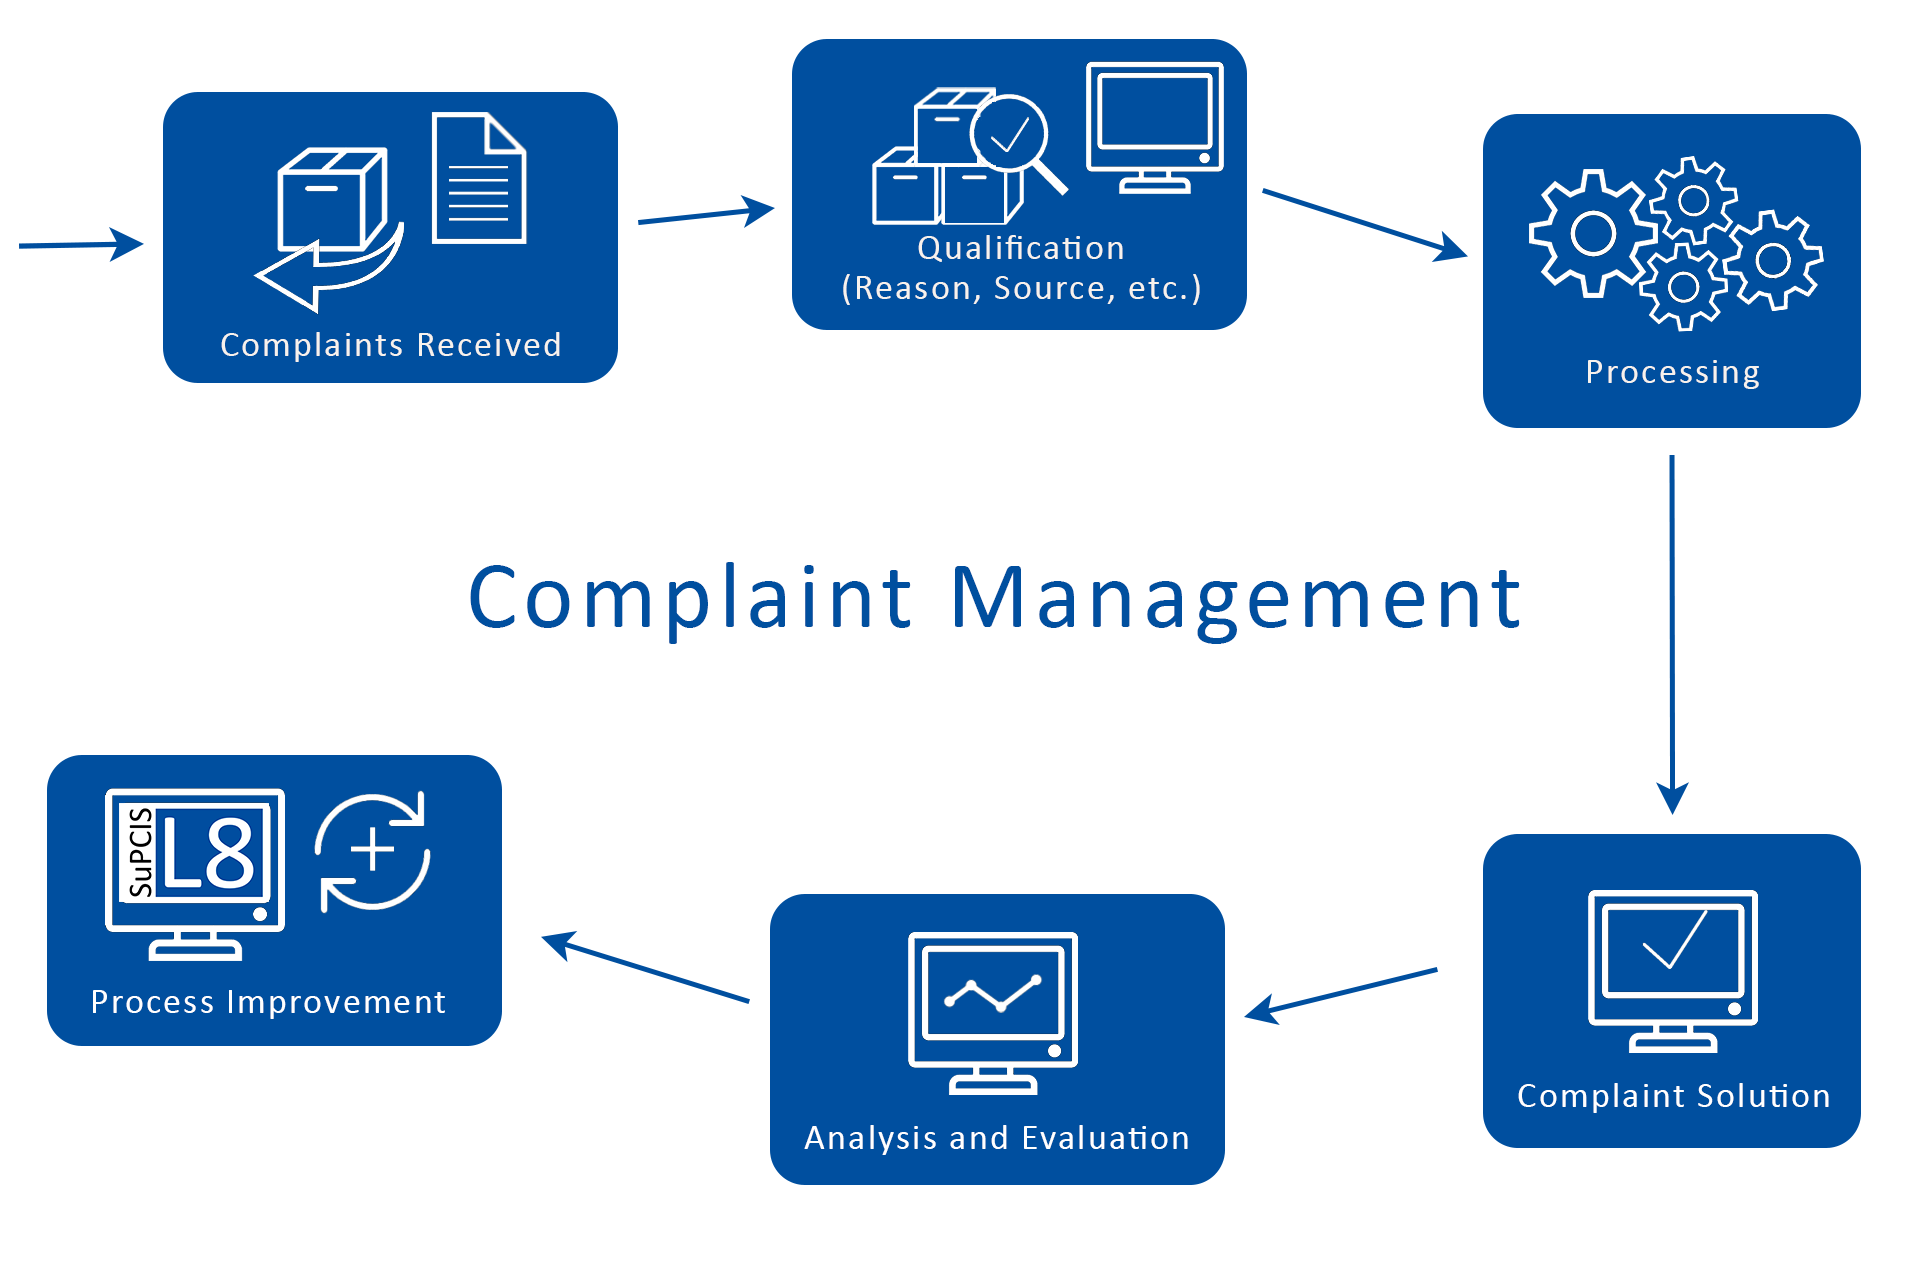 Phases of complaint management